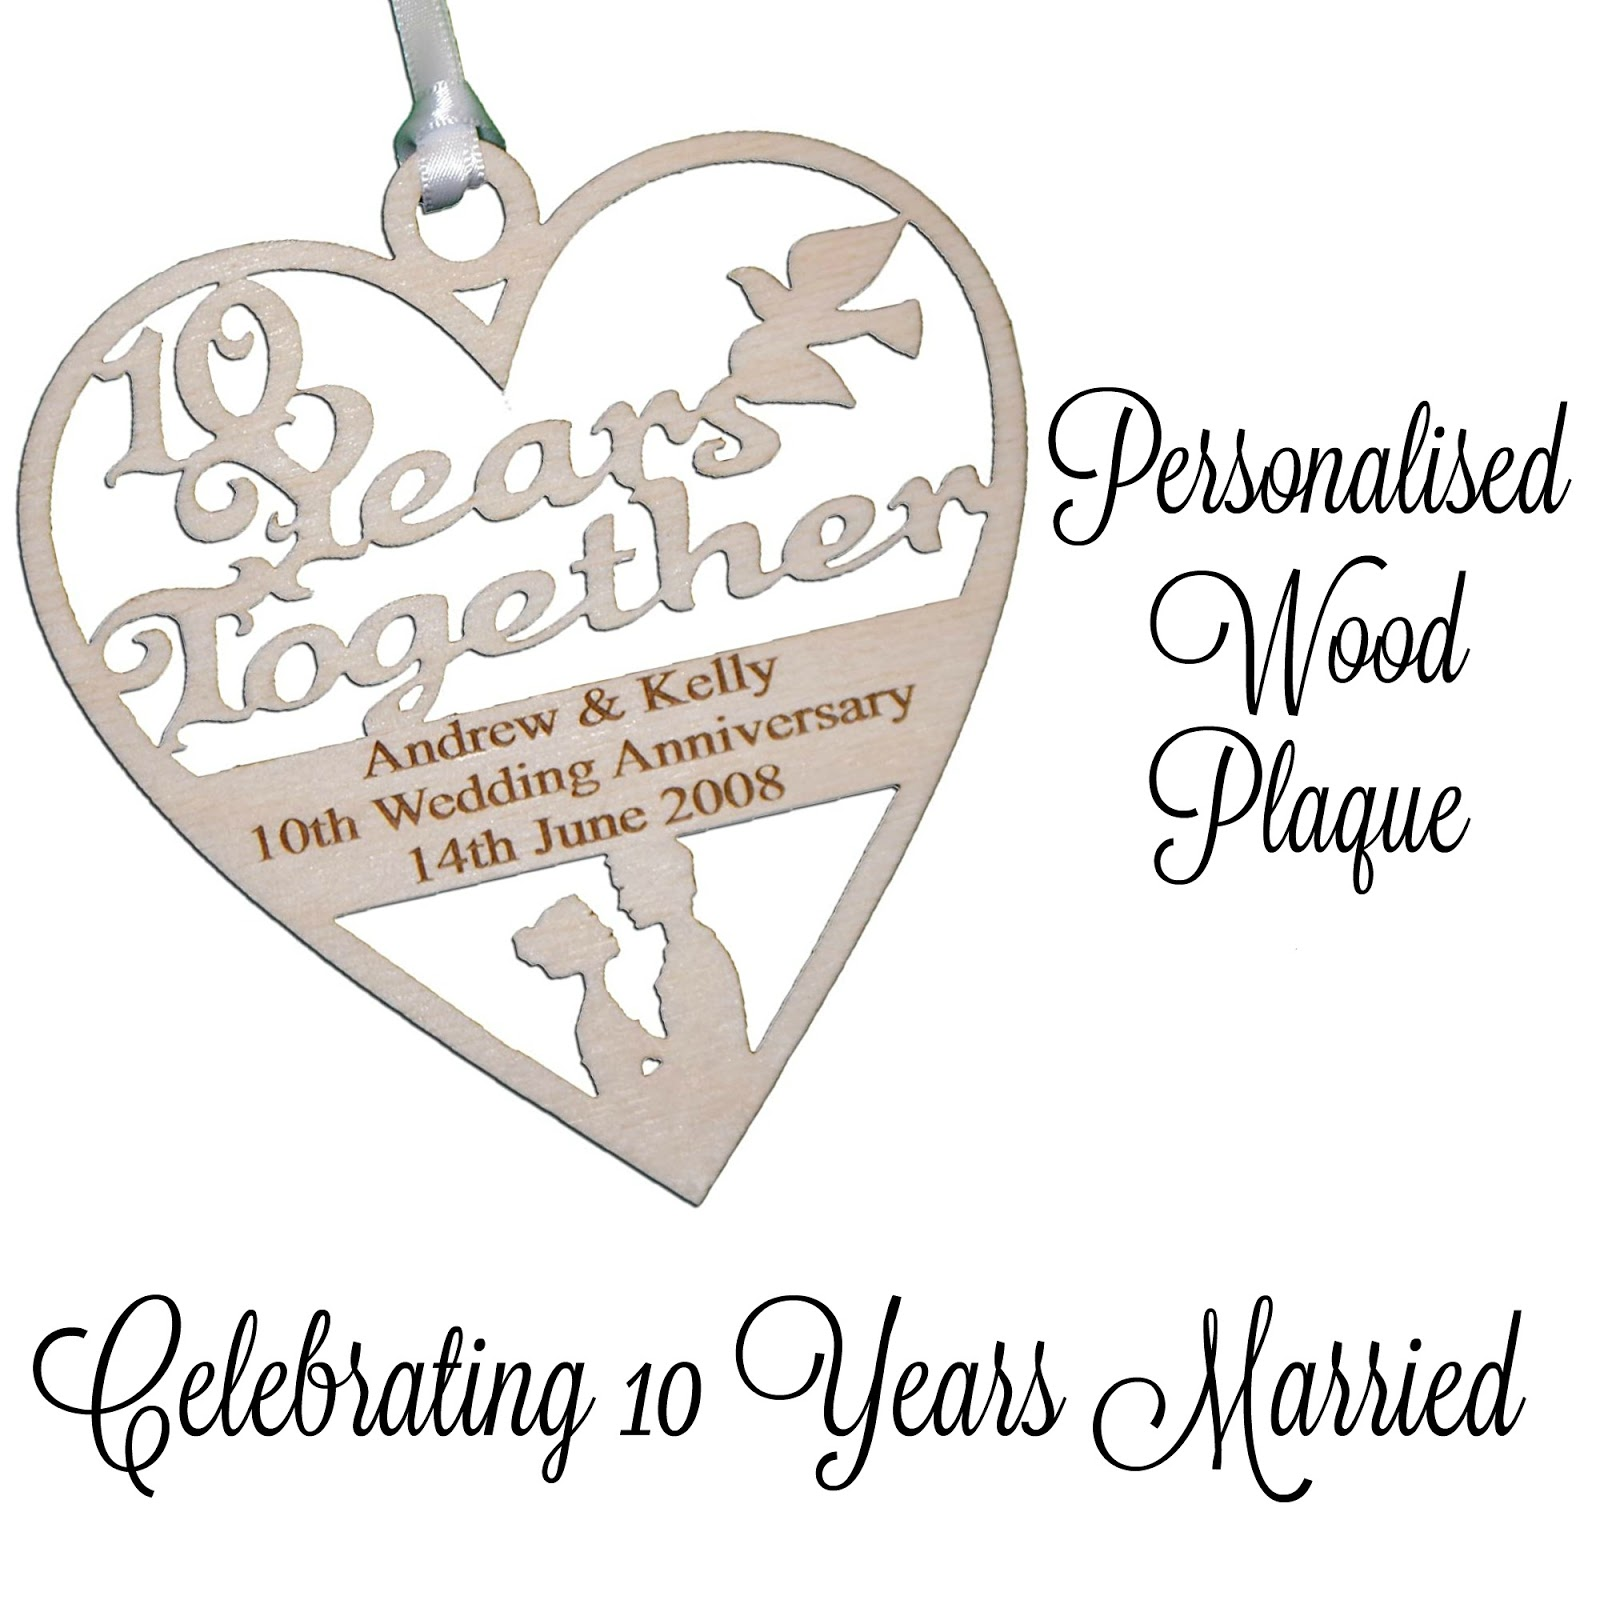 a 10th anniversary wood plaque